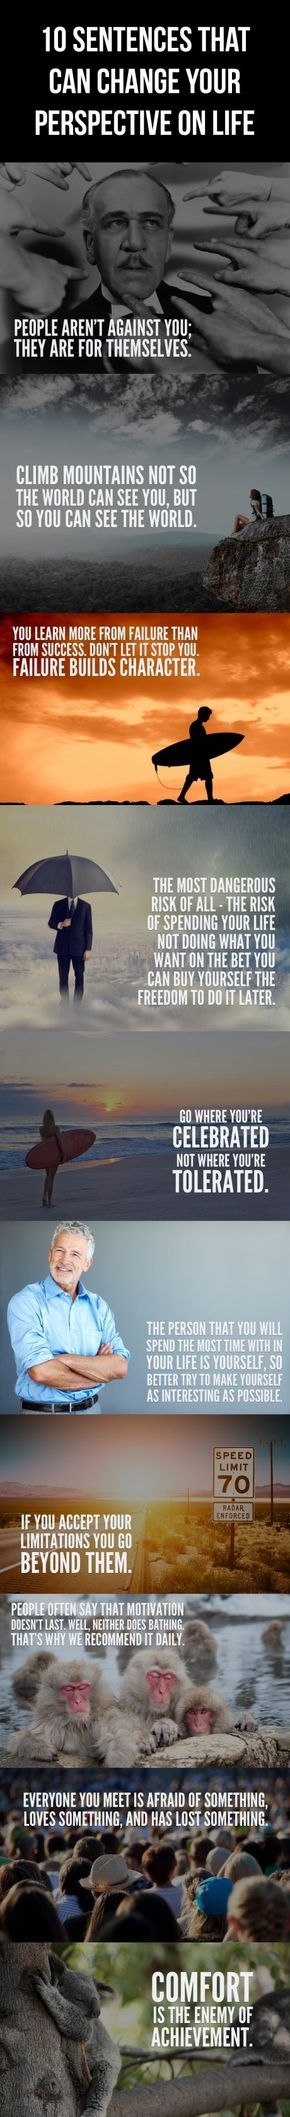 10 Sentences That Can Change Your Perspective On Life - Misc